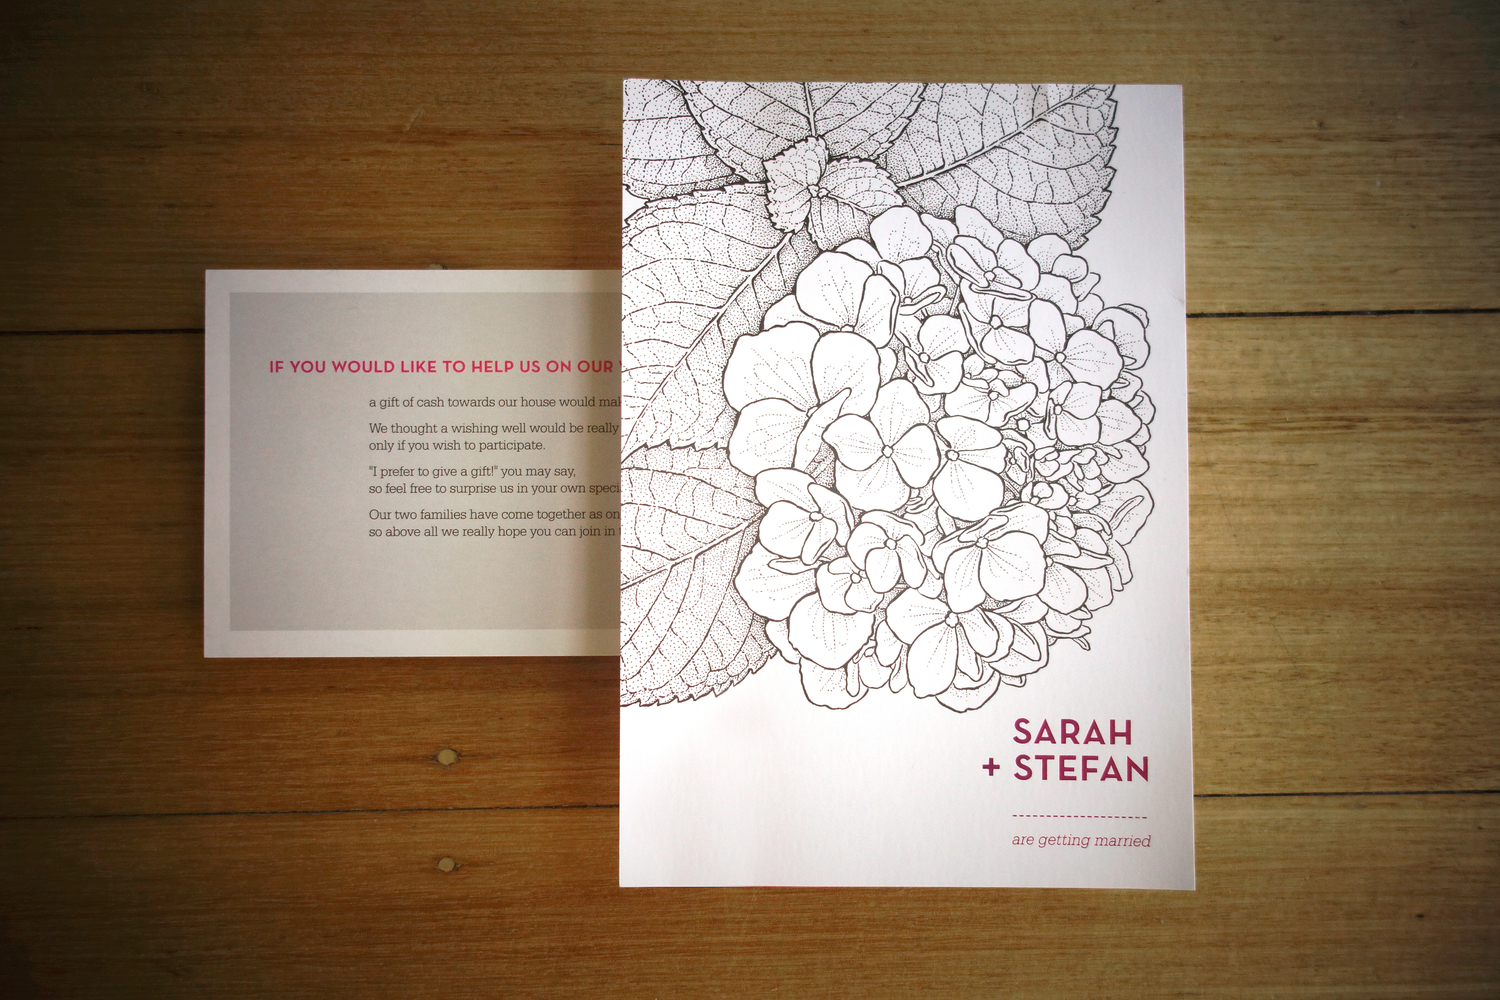 Sarah+Stefan Wedding Invitations